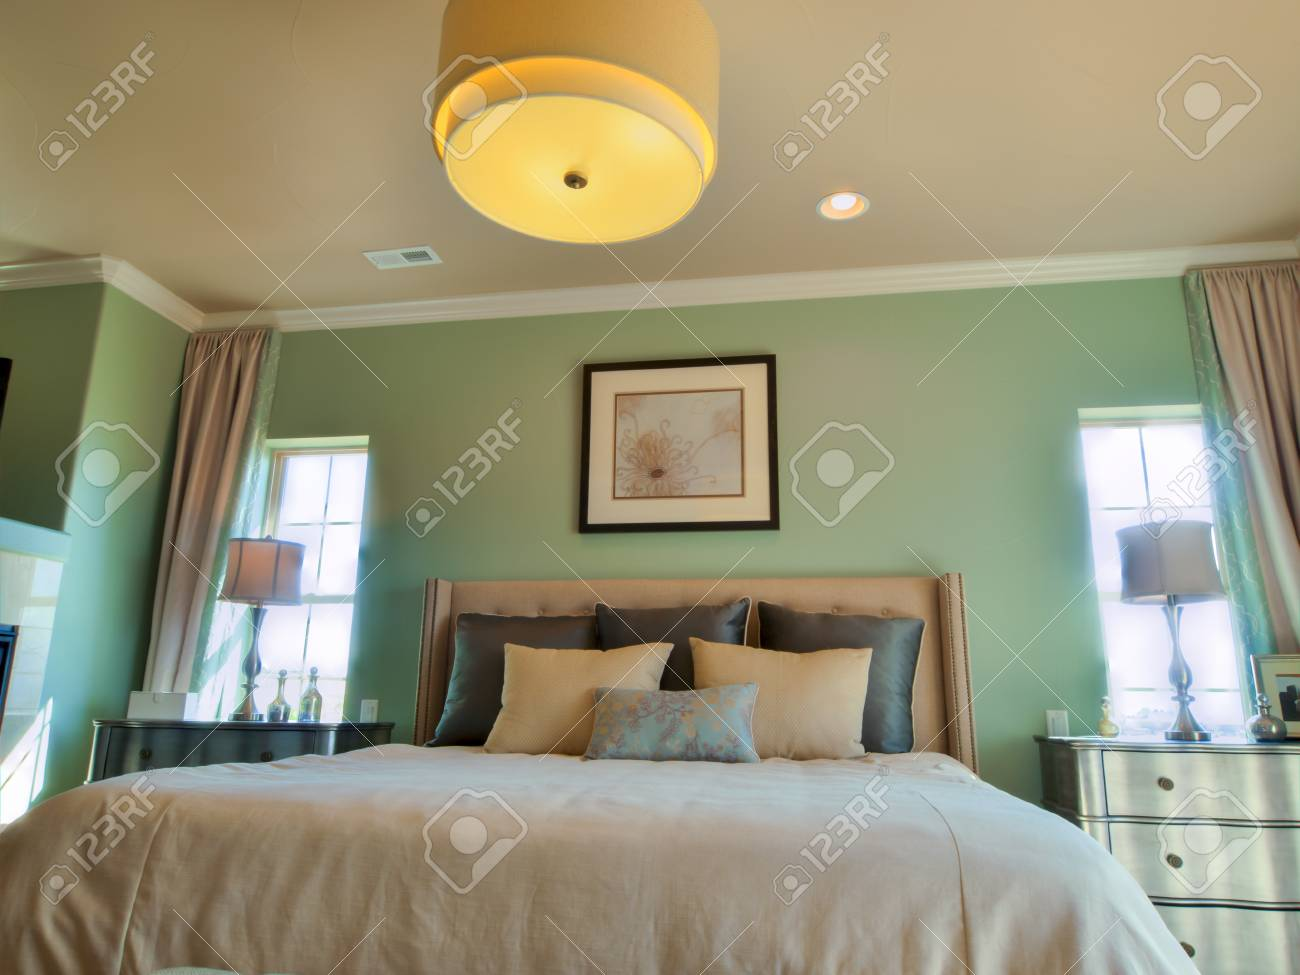 Residential interior of modern house. Stock Photo - 15179689